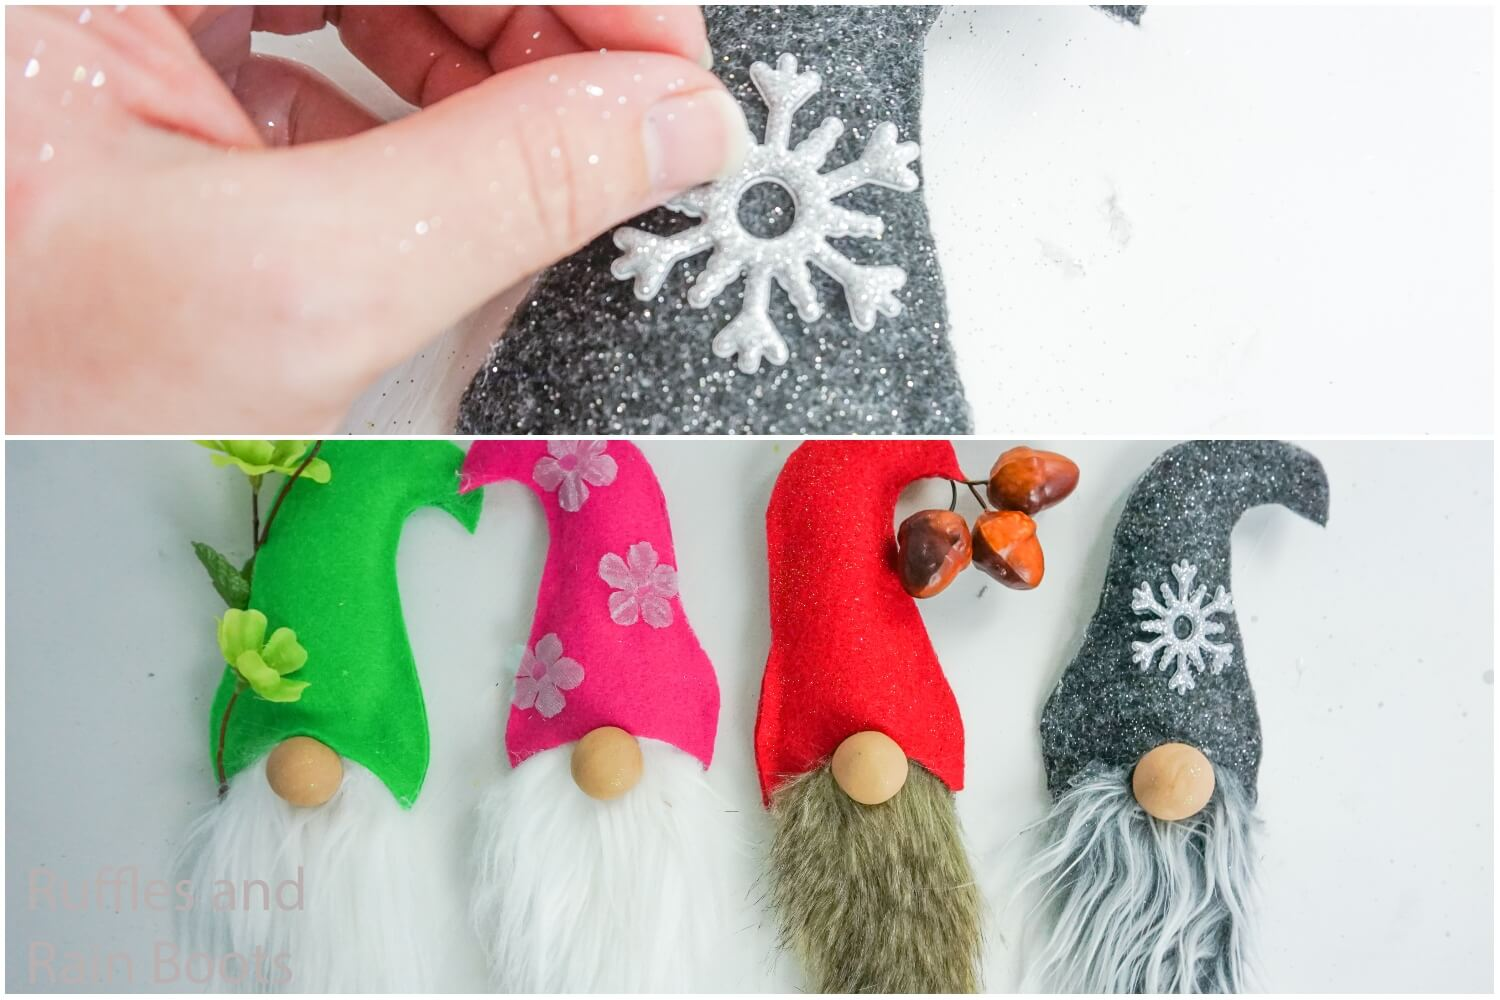 photo collage tutorial of how to make seasonal home sign by adding details to each gnome face